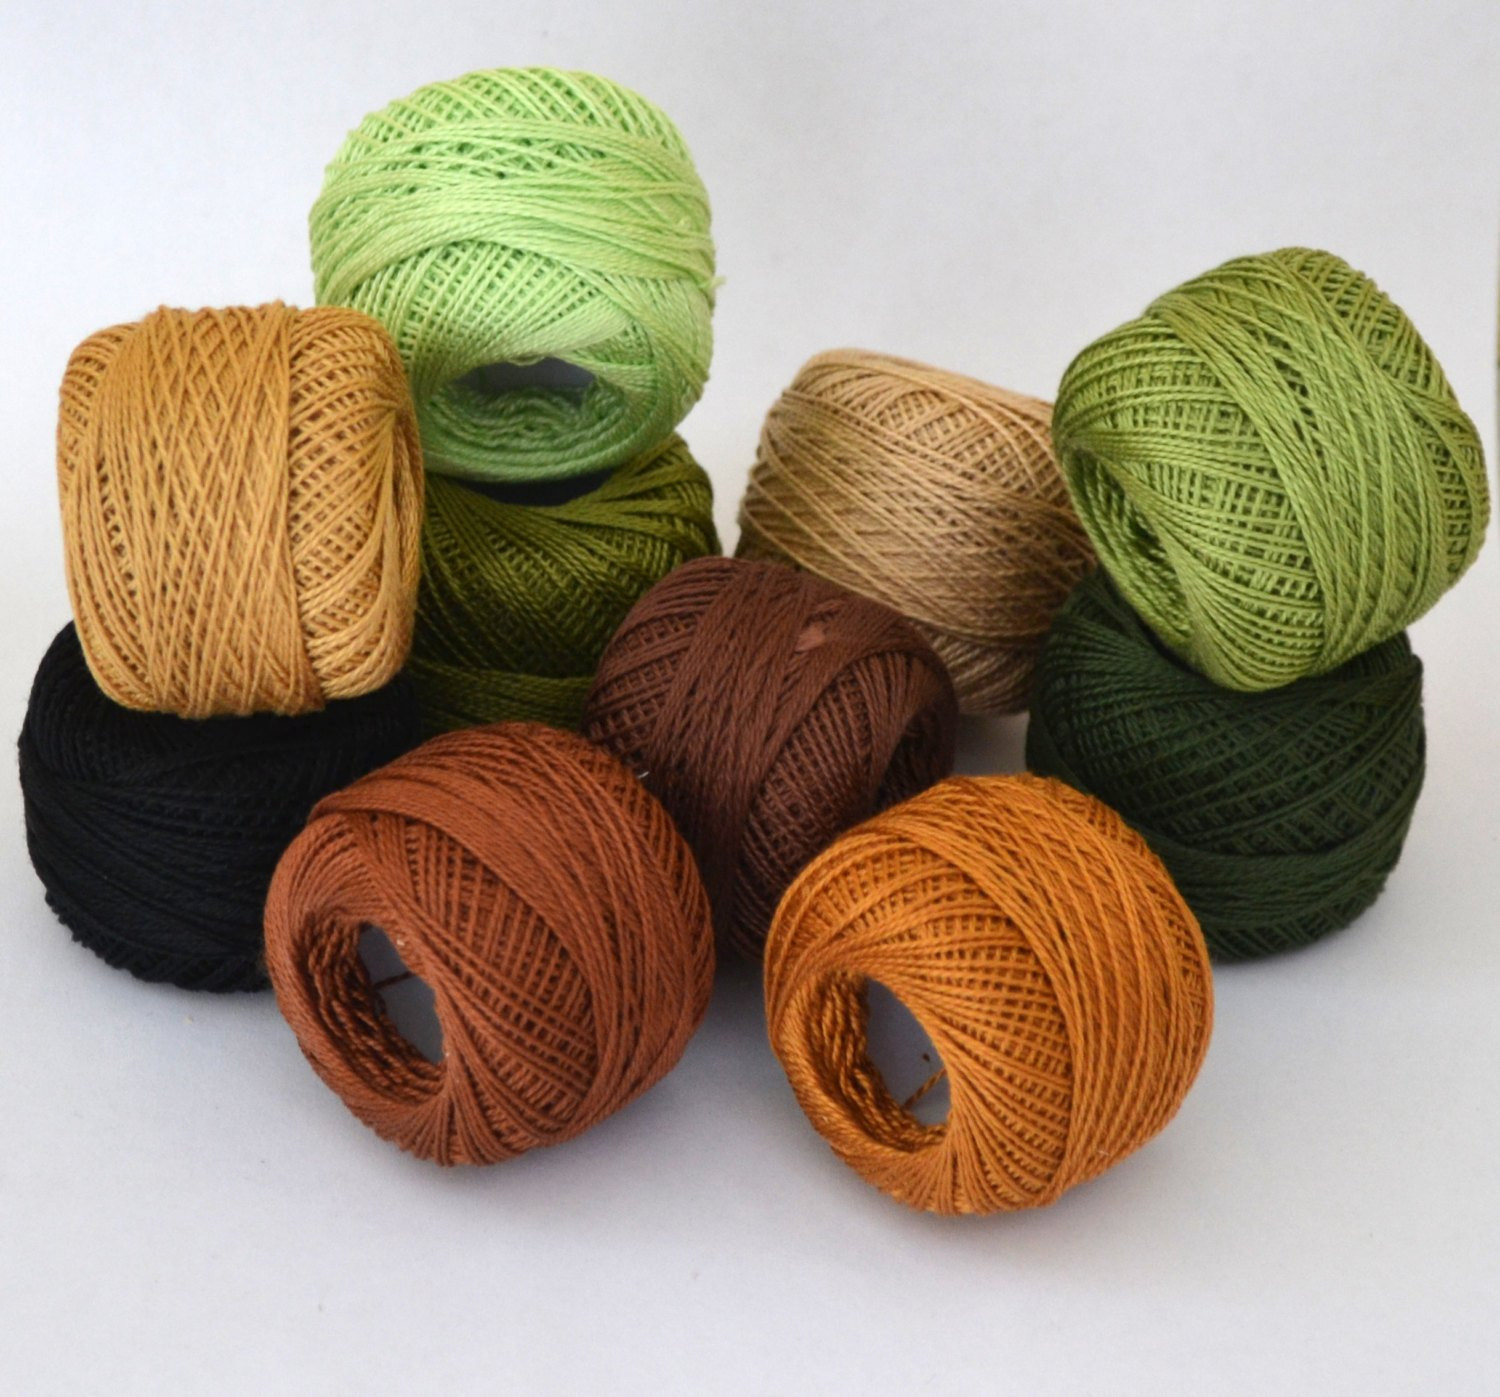 Crochet Thread Sizes Elegant Free Shipping Cotton Crochet Threads Size 8 Embroidery Of Fresh 46 Images Crochet Thread Sizes